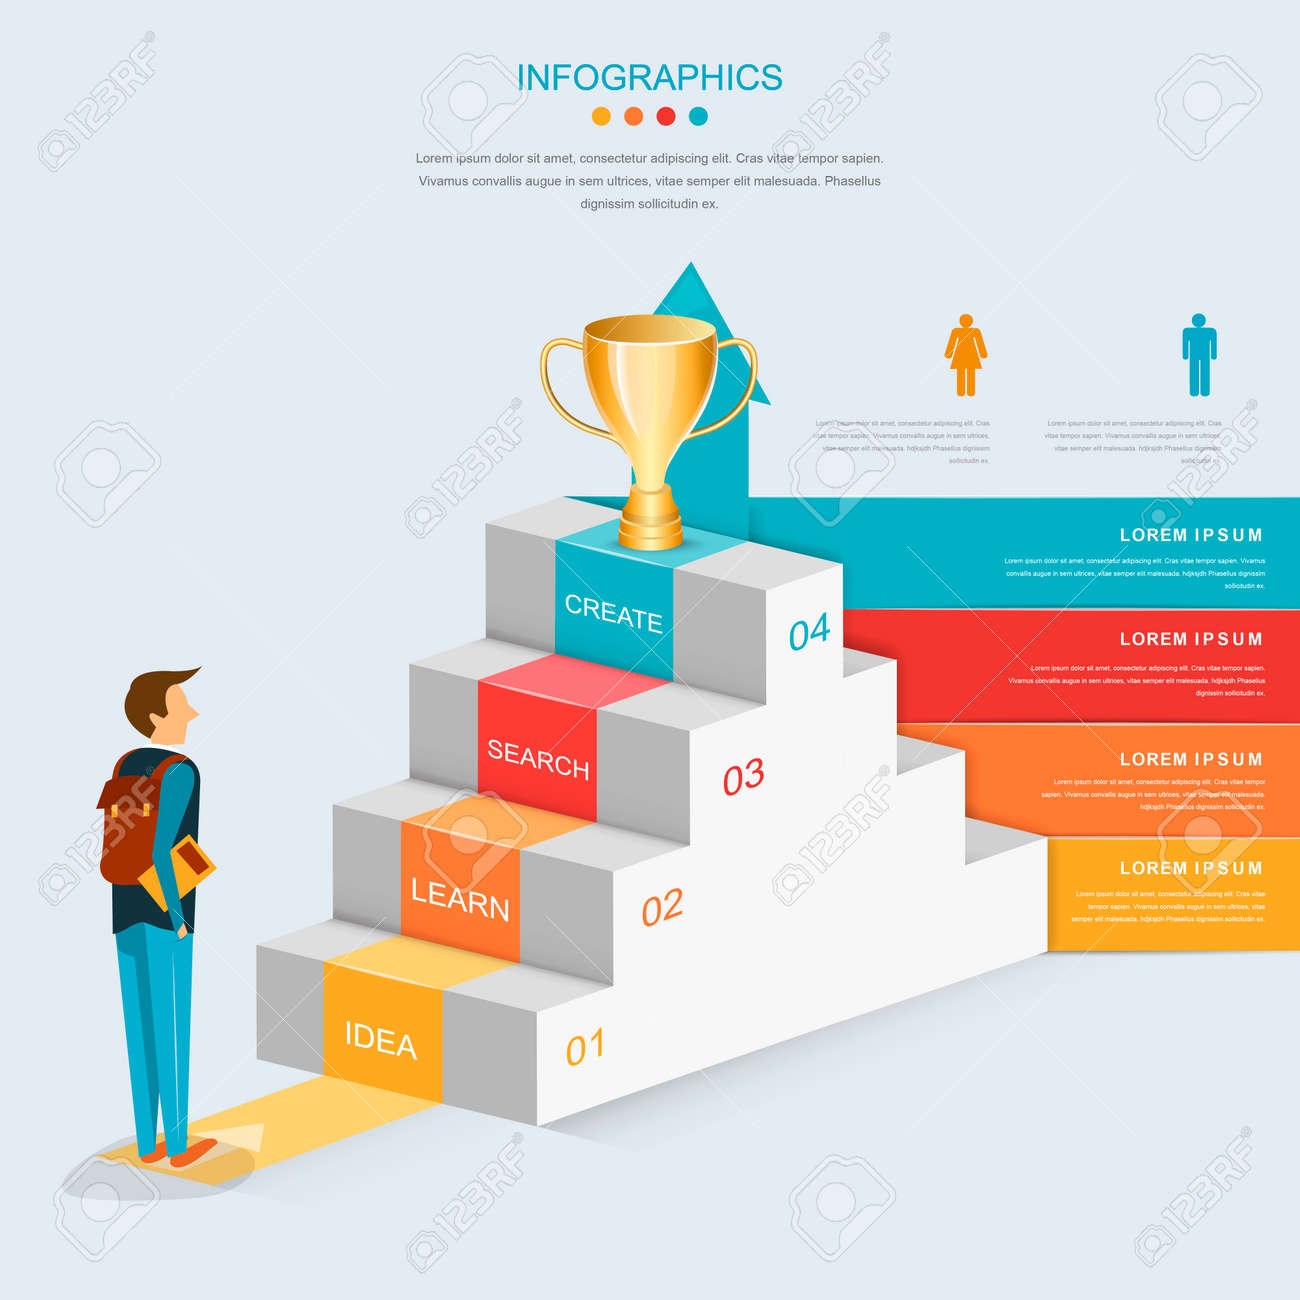 education infographic template design with stairs and growing